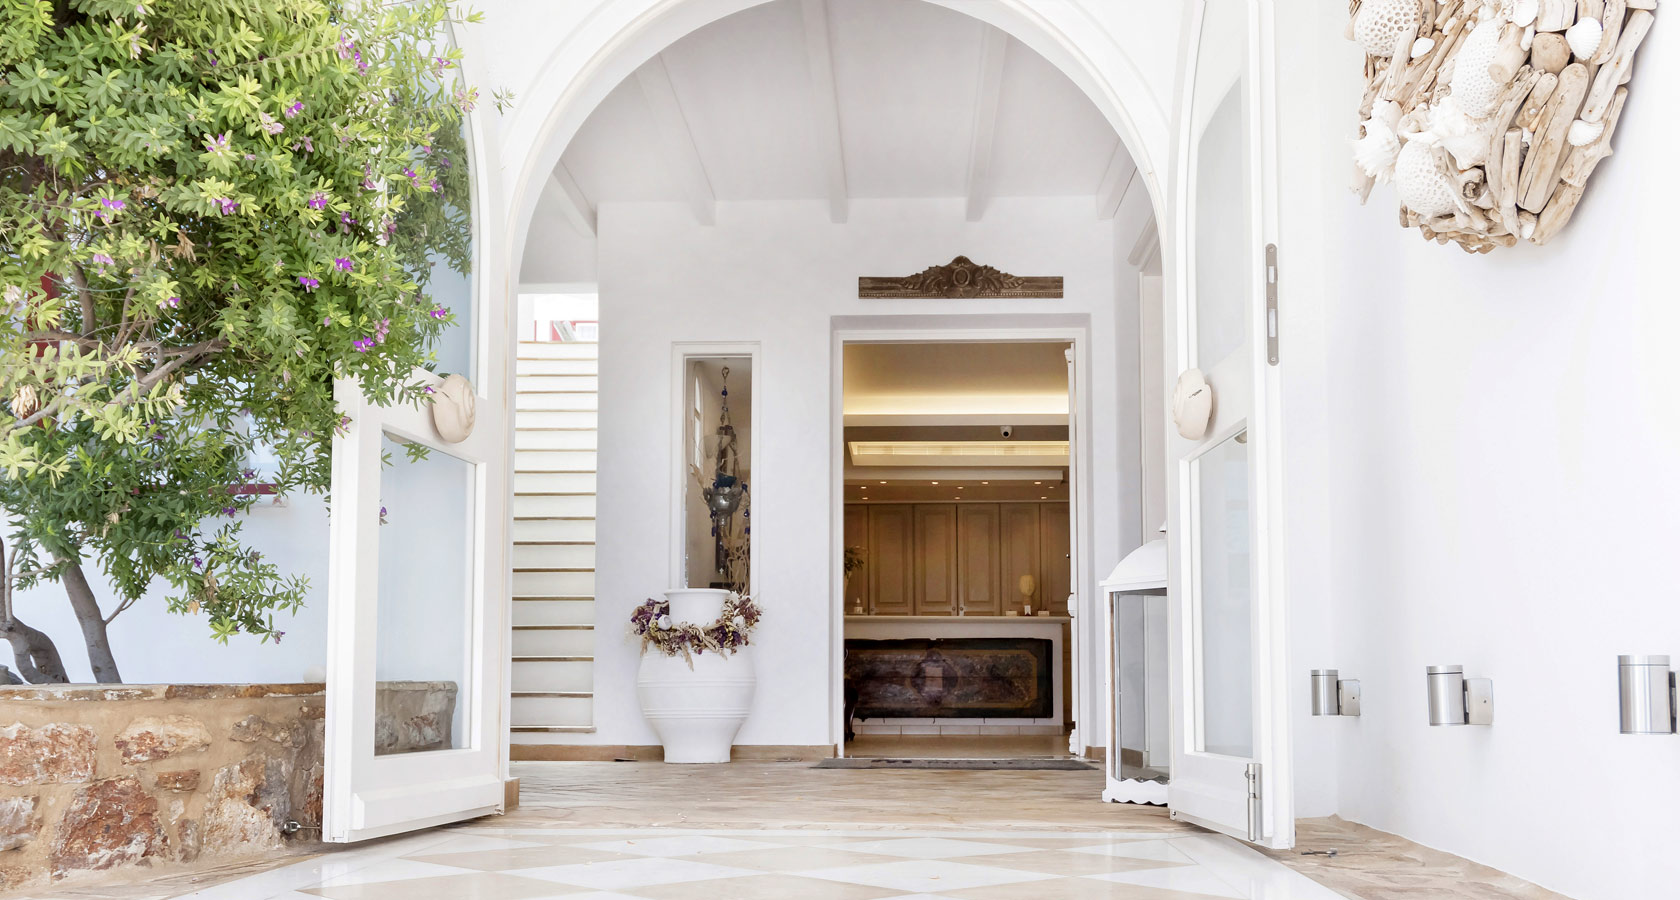 Entrance of Stelia Mare Hotel in Paros, Naoussa